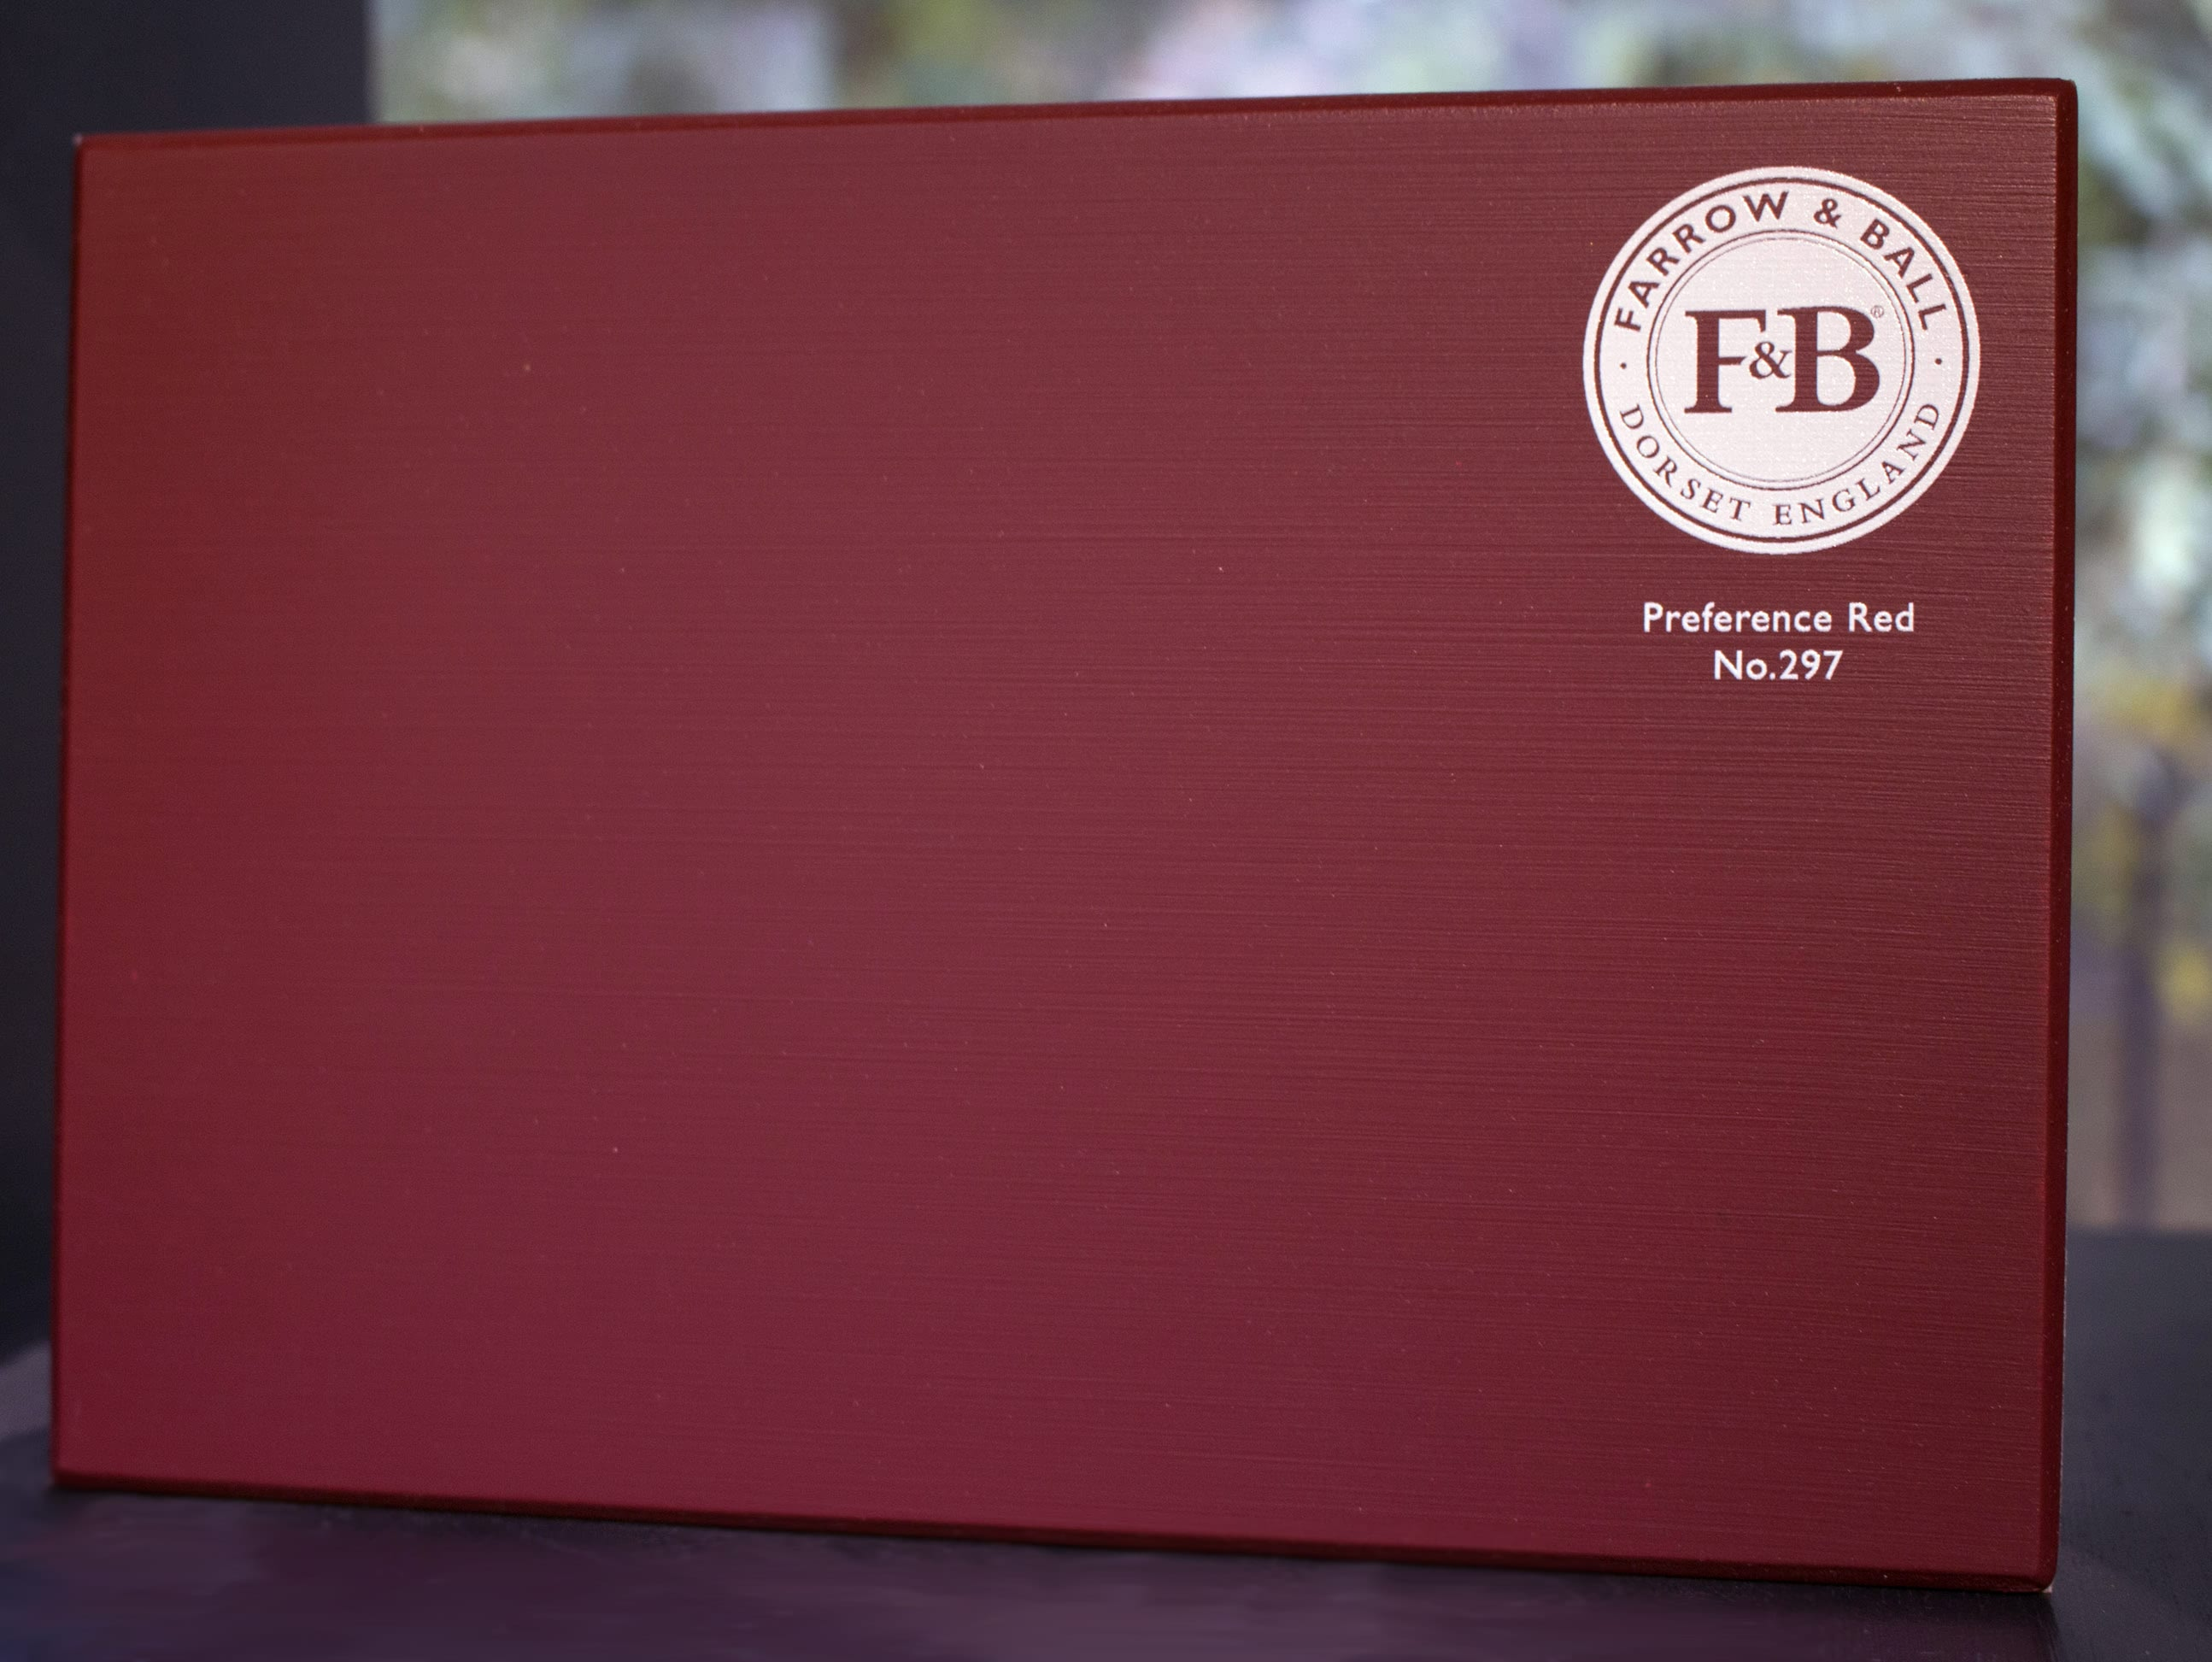 farrow&ball, farrow and ball, paint, decorating, paint brush, preference red